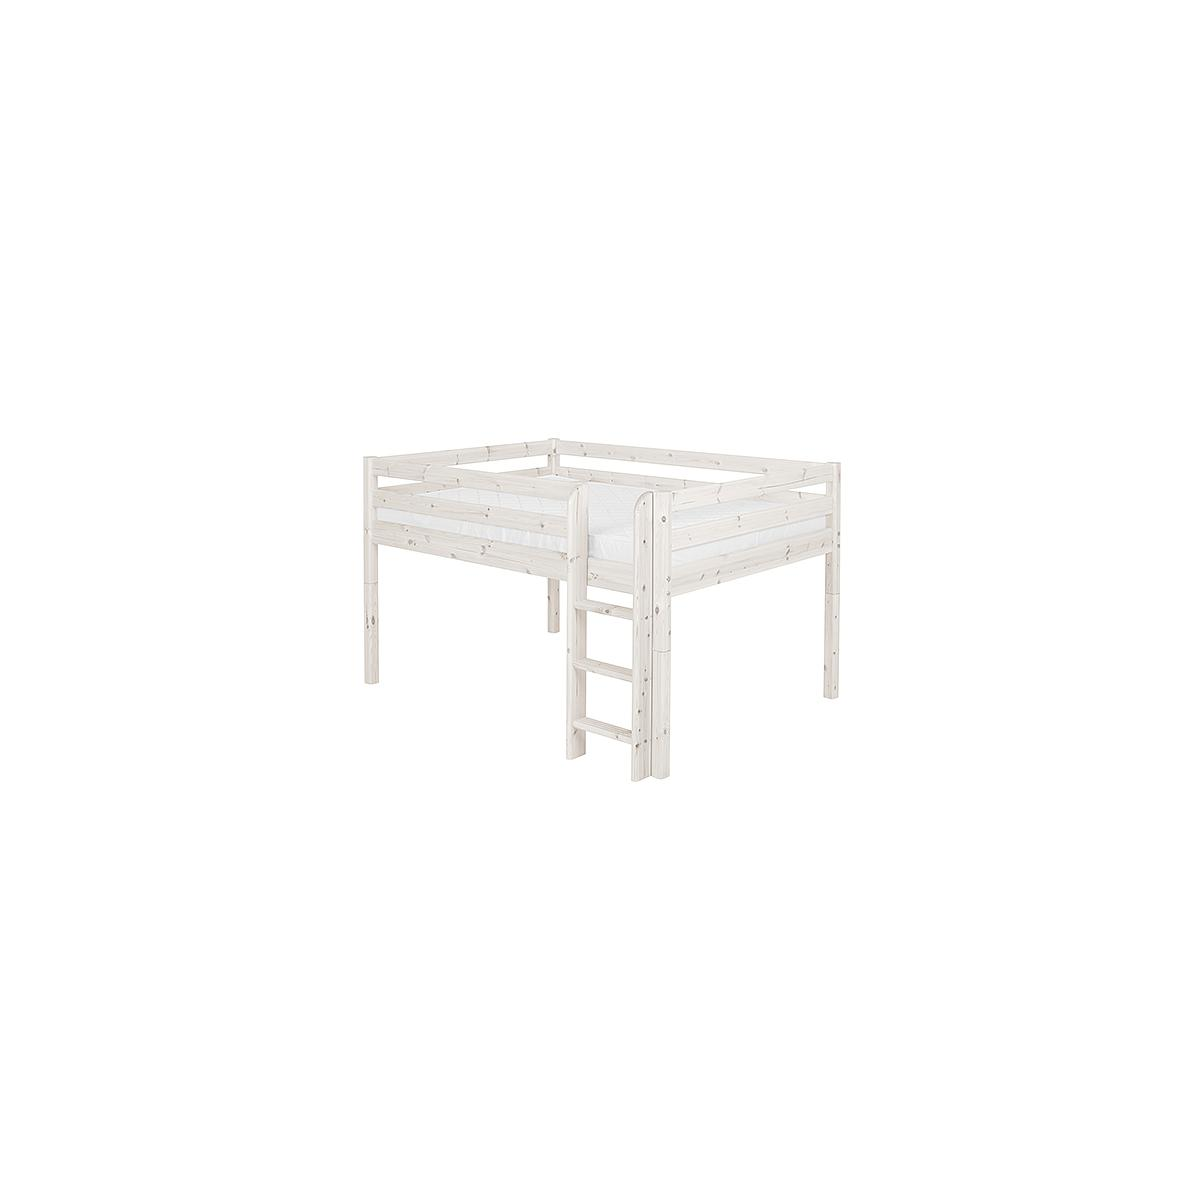 Cama doble media alta 140x190 CLASSIC Flexa blanco cal